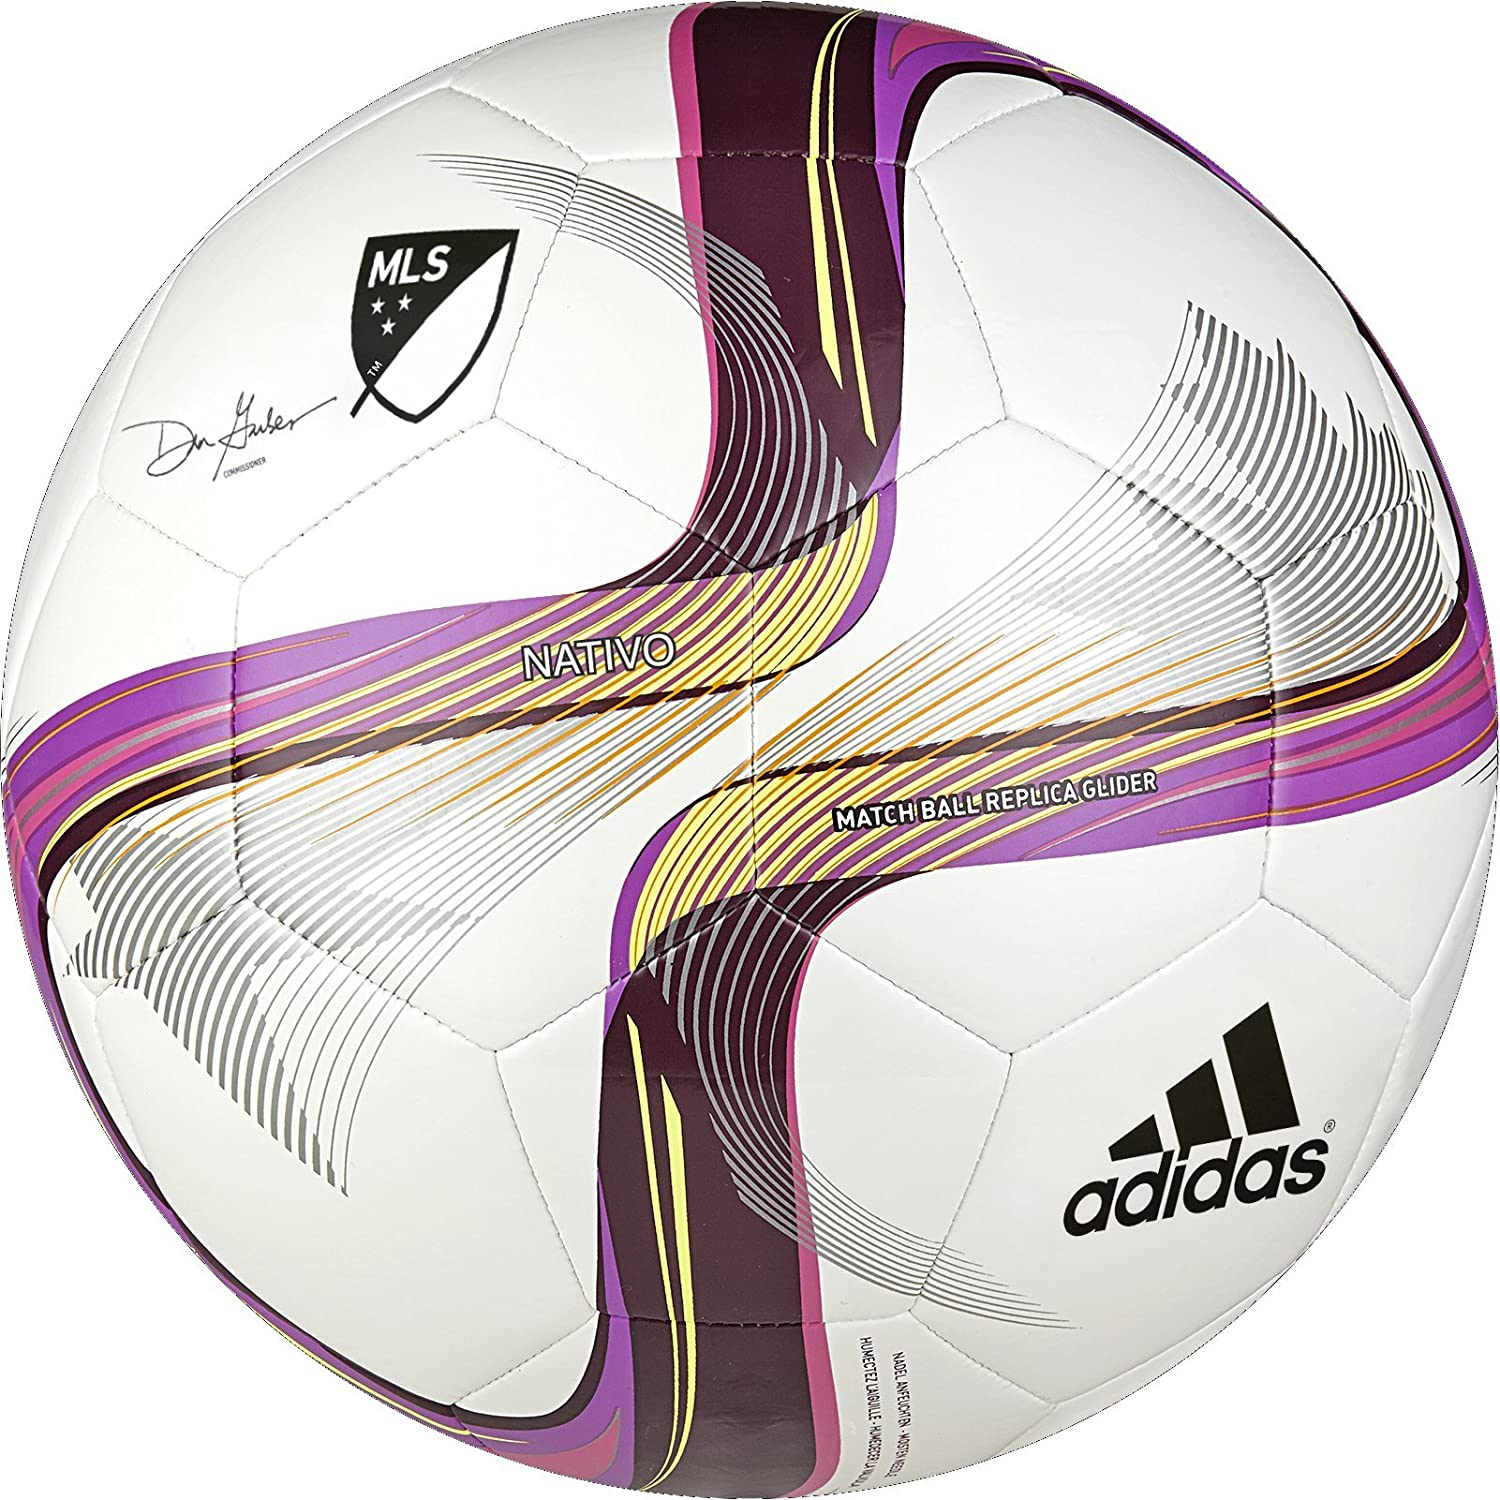 Amazon Com Adidas Performance 2015 Mls Glider Soccer Ball White Flash Pink Pink Size 4 Sports Outdoors